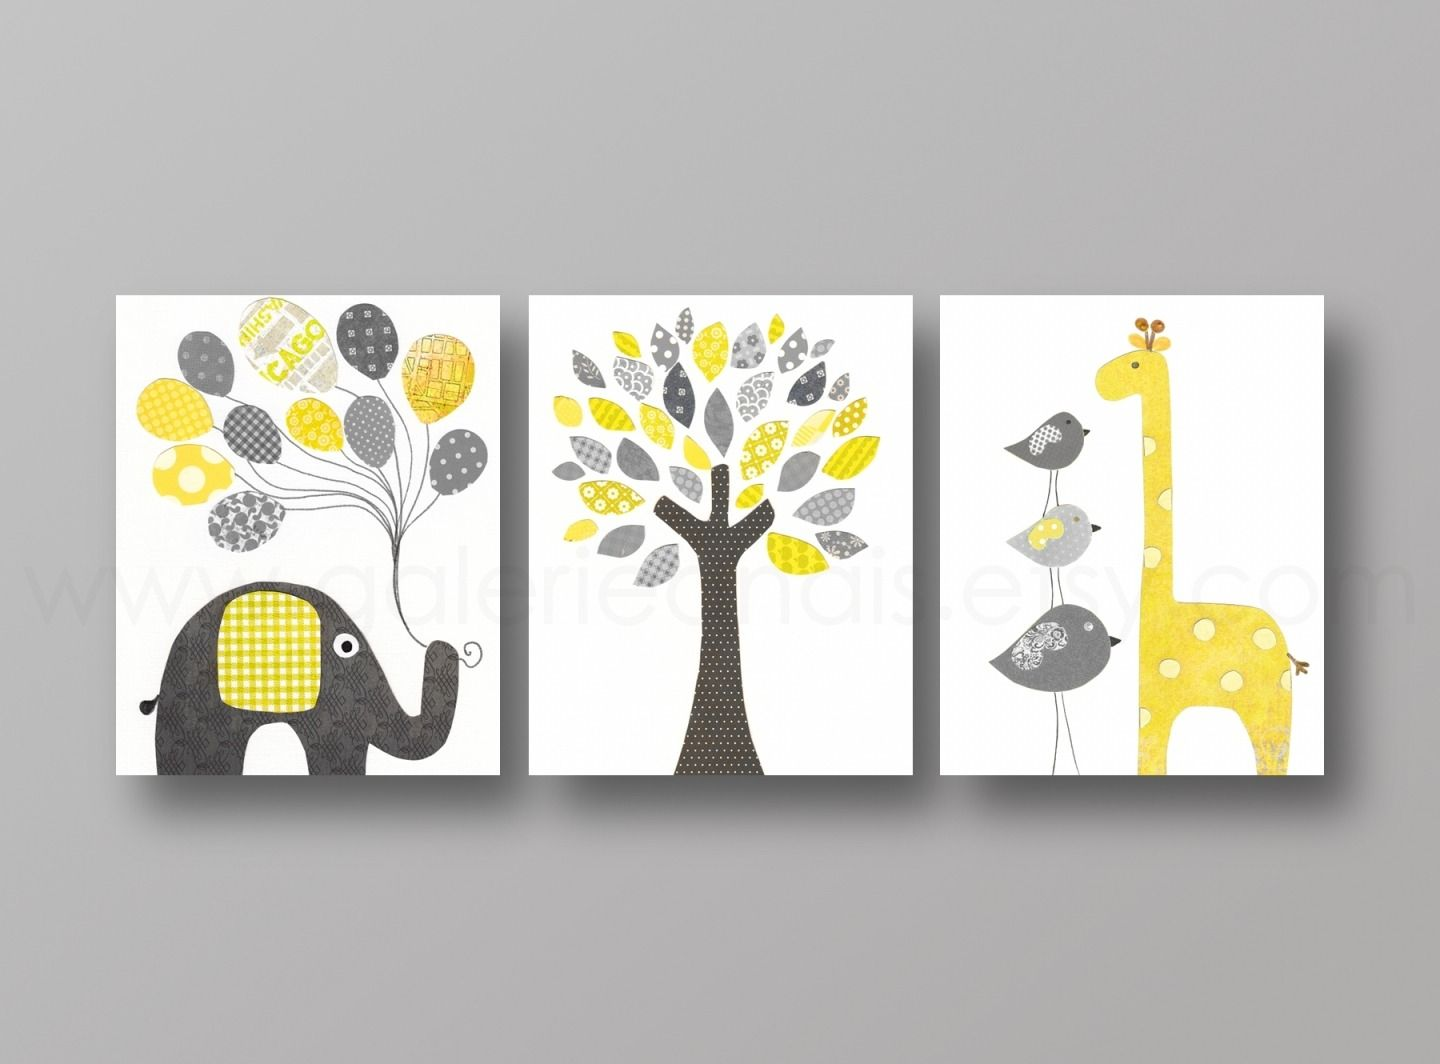 Lot de 3 illustrations pour chambre d 39 enfant et bebe jaune et gris affiche b b et illustrations for Photos chambre enfants